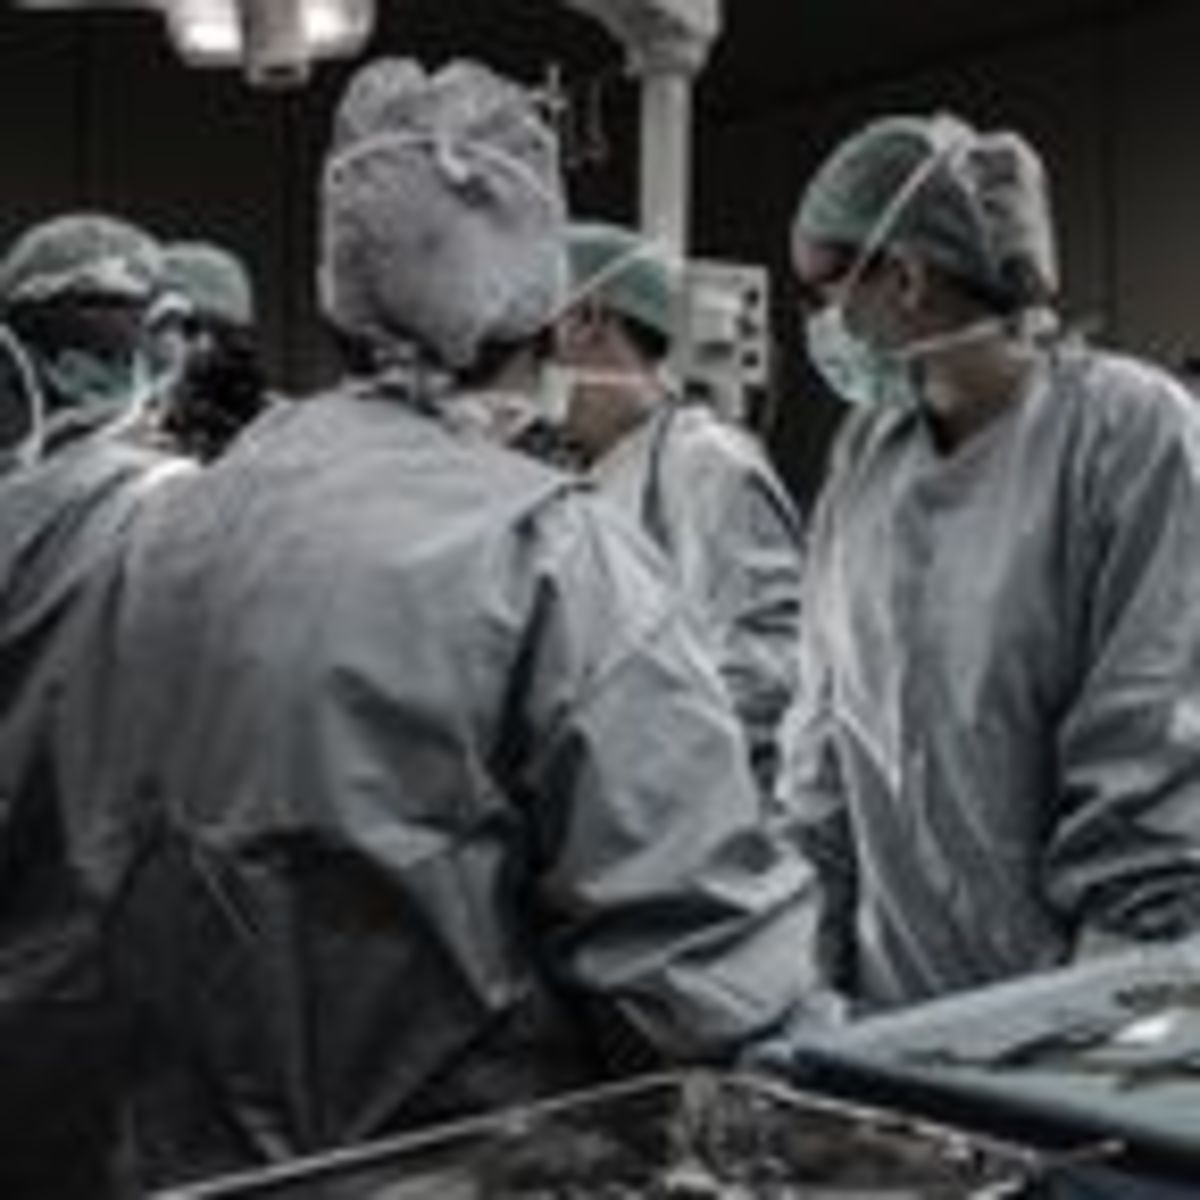 How to Mentally Prepare for Surgery and Recover Faster | Psychology